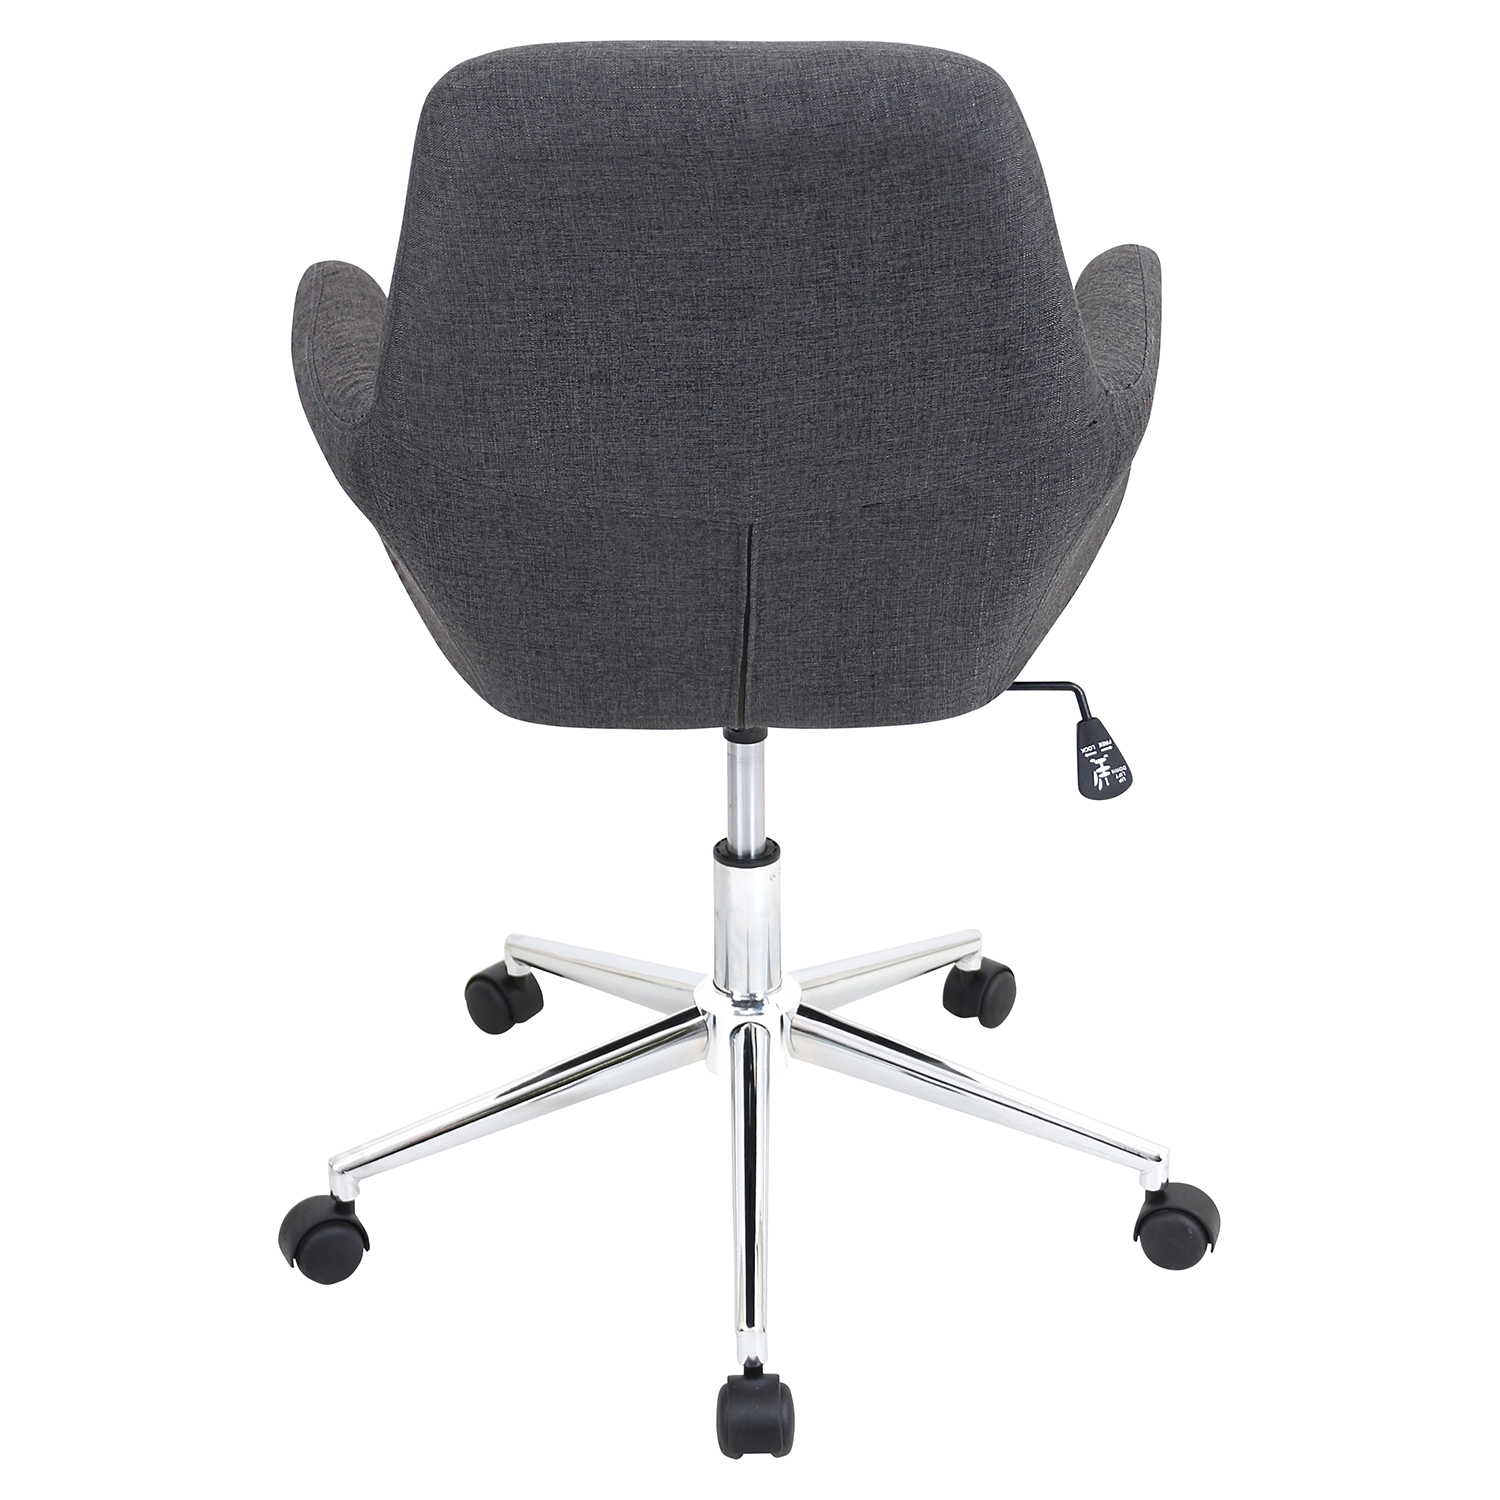 Degree Height Adjustable Office Chair - Swivel, Brown - LMS-OFC-AC-DGR-GY